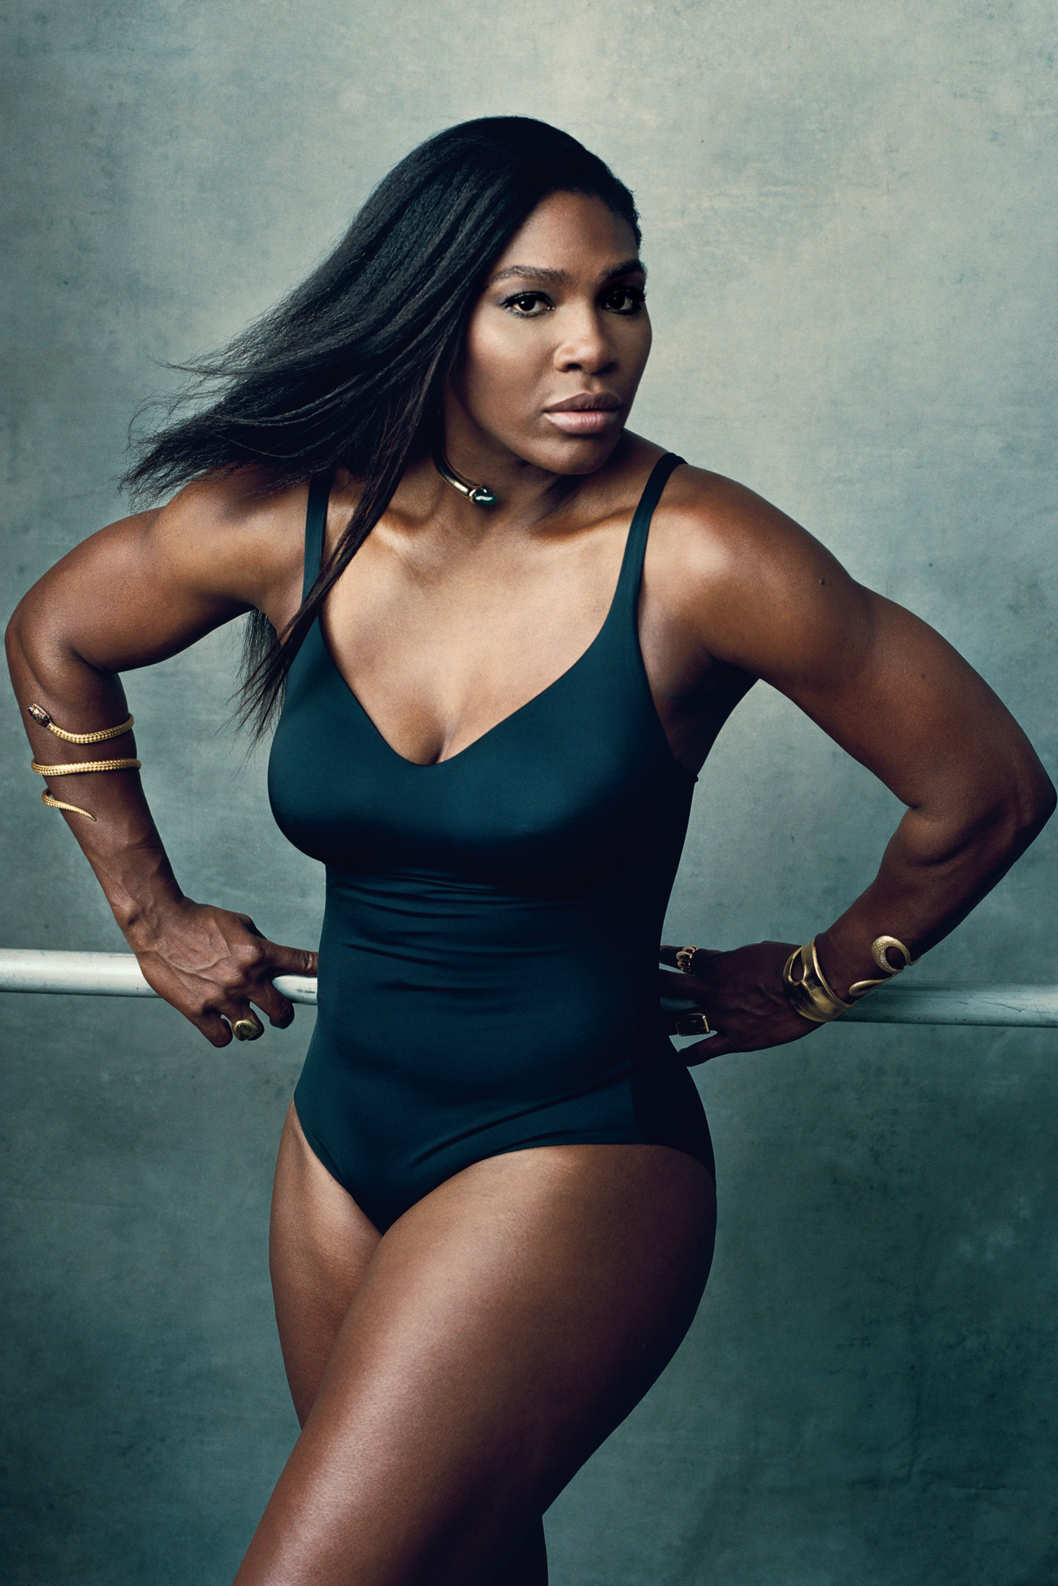 07-serena-williams-4.w529.h793.2x